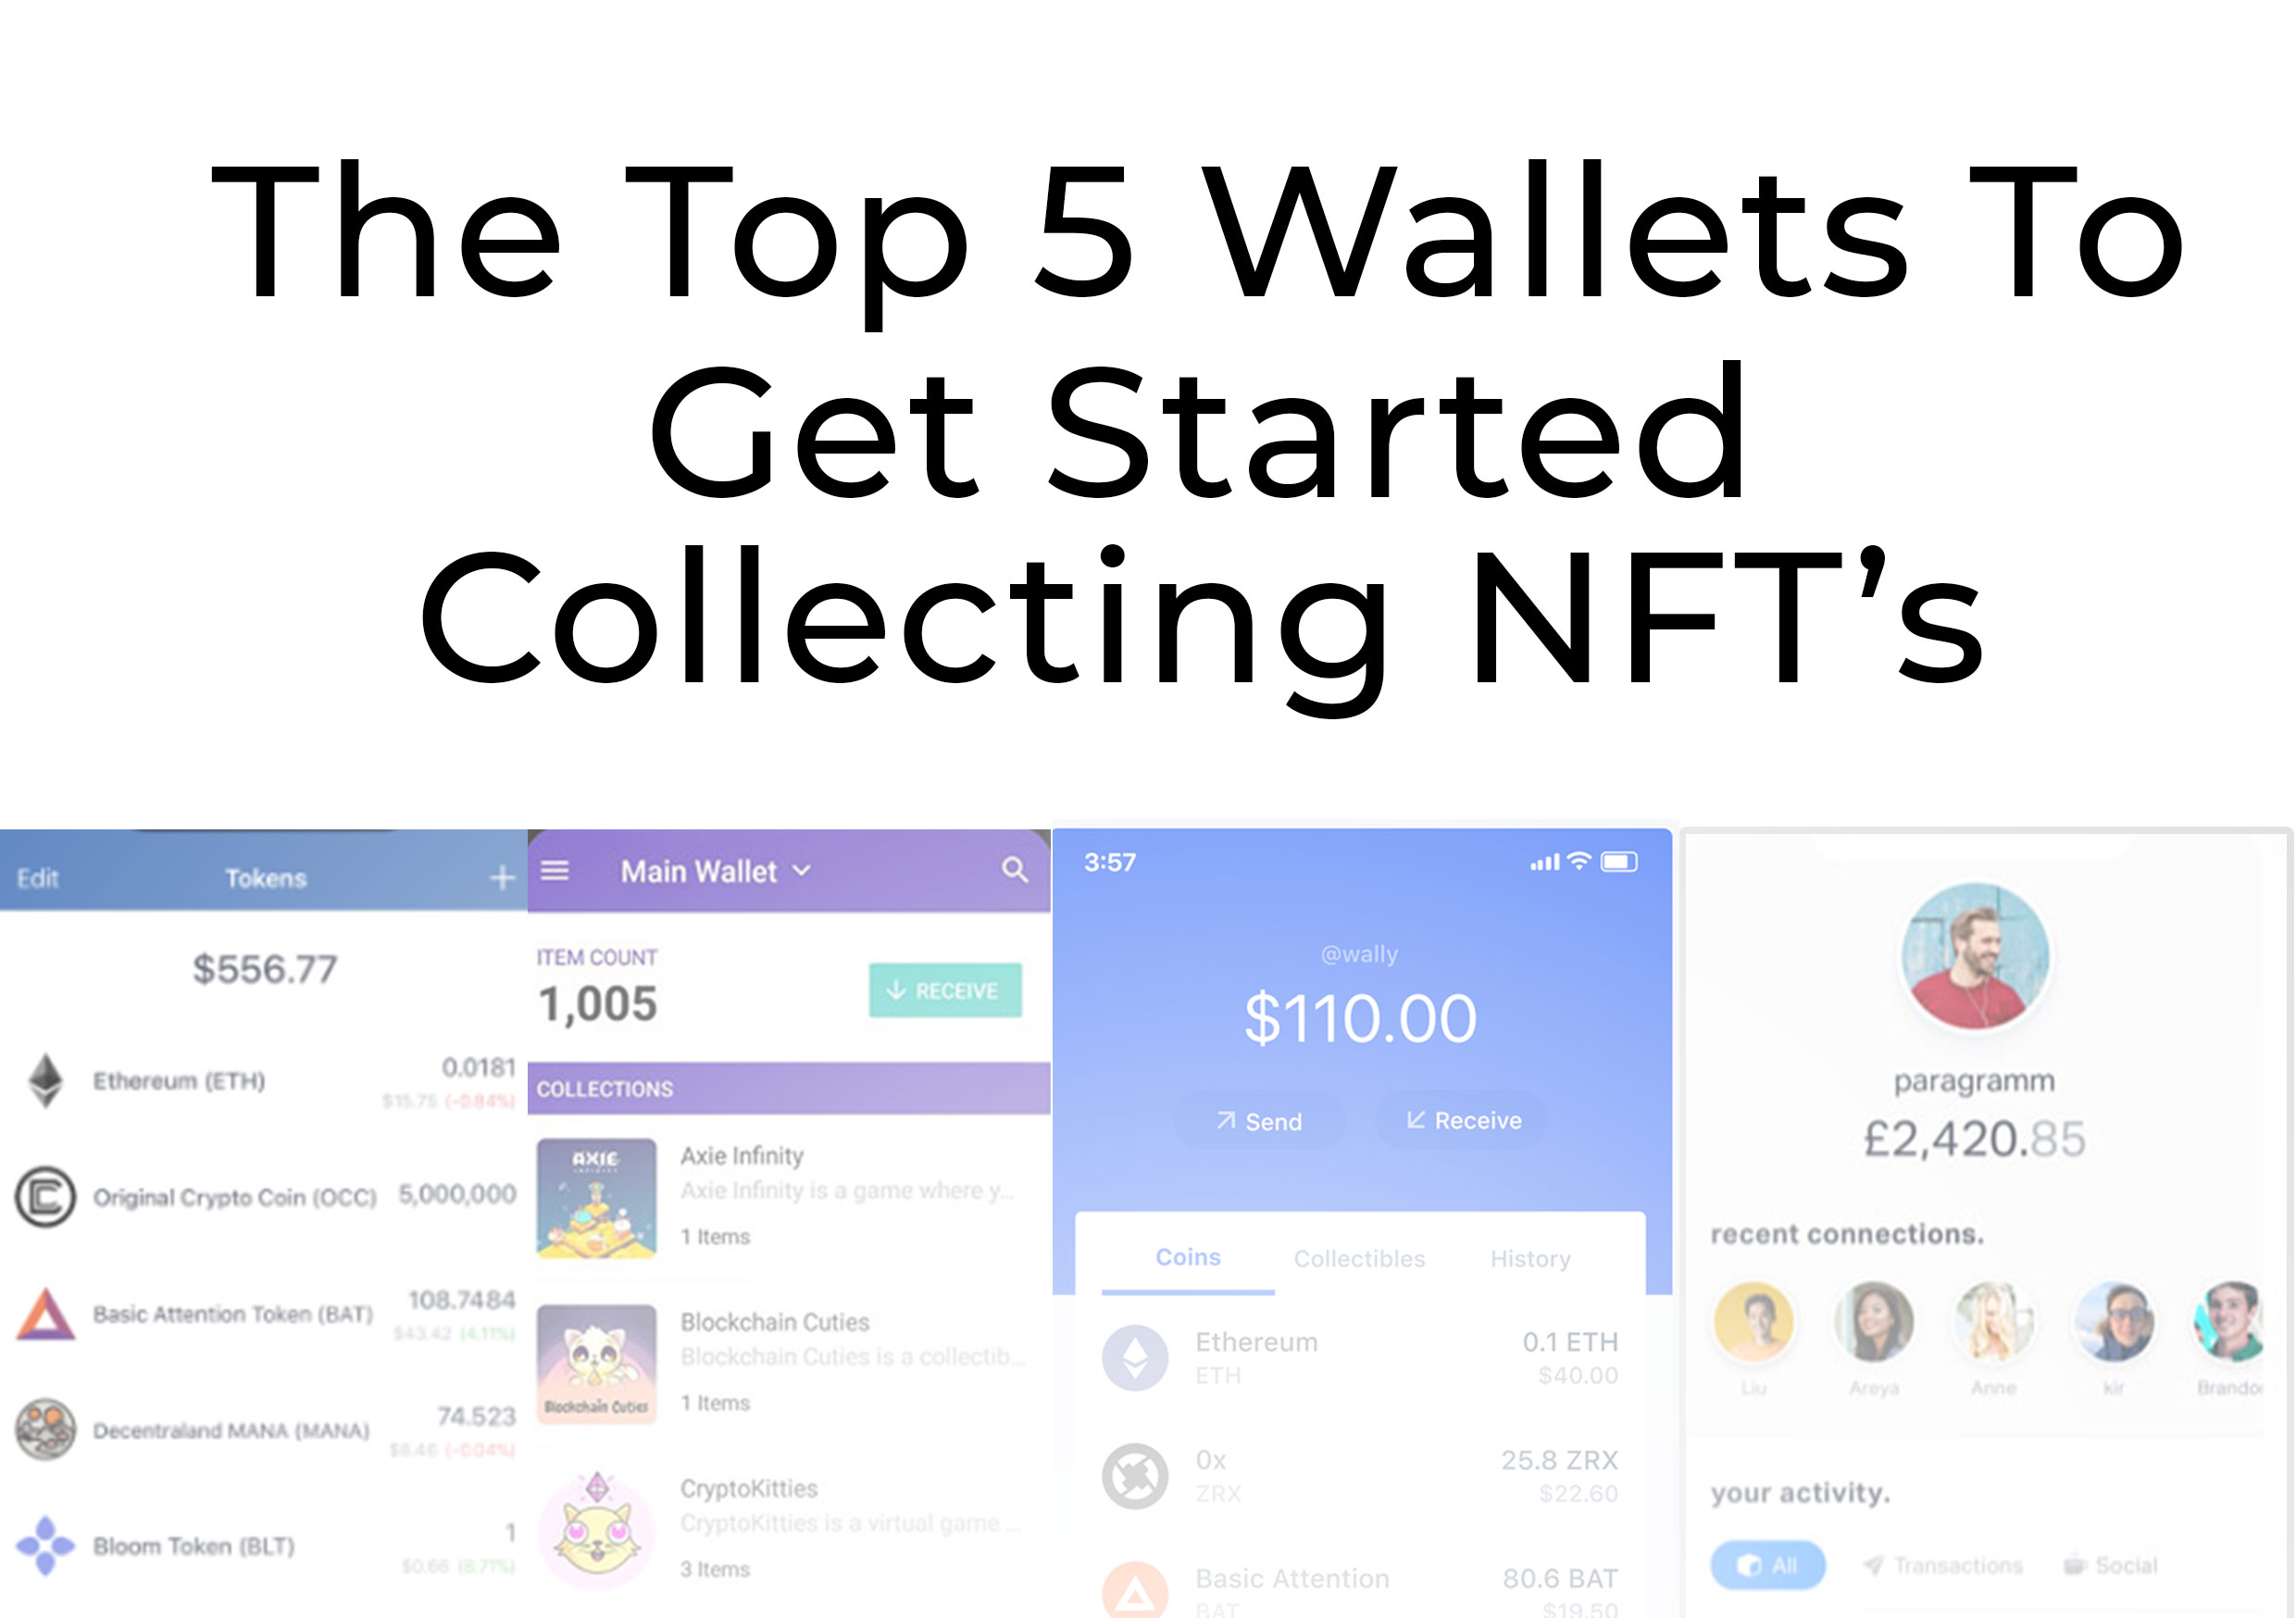 The Top 5 Wallets To Get Started Collecting NFT's